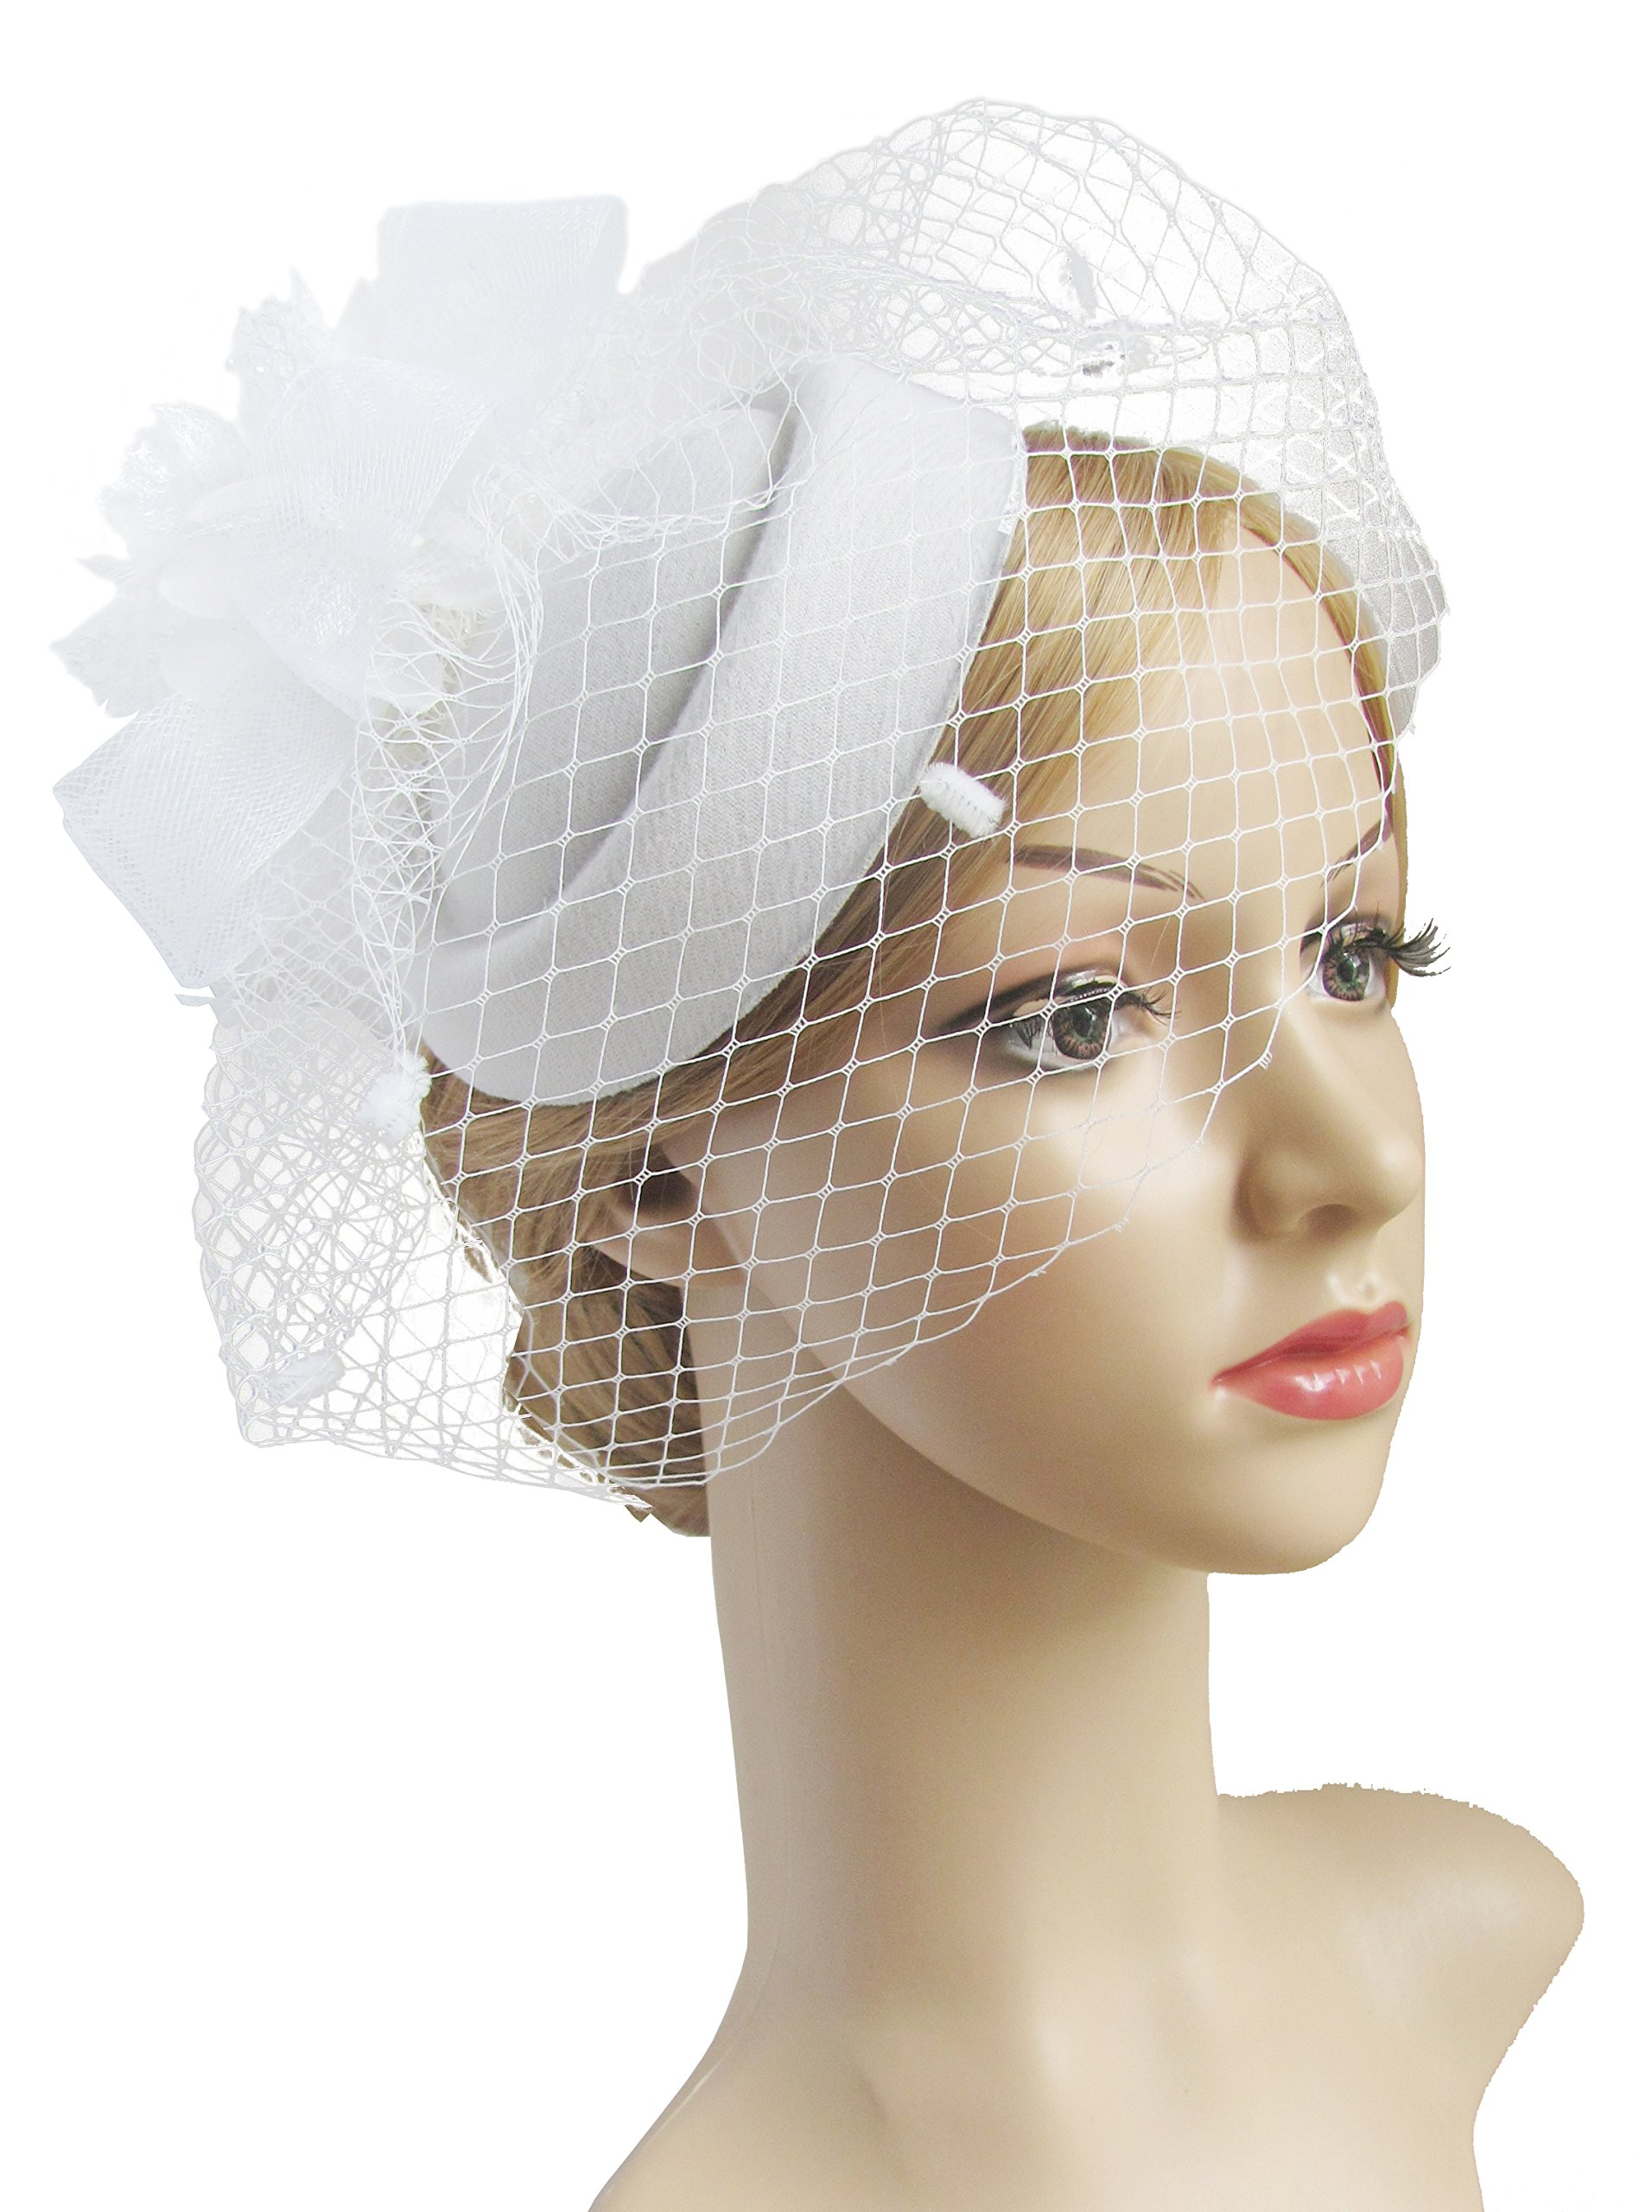 K.CLASSIC Fascinator Hair Clip Pillbox Hat Bowler Feather Flower Veil Wedding Party Hat Tea Hat (White)